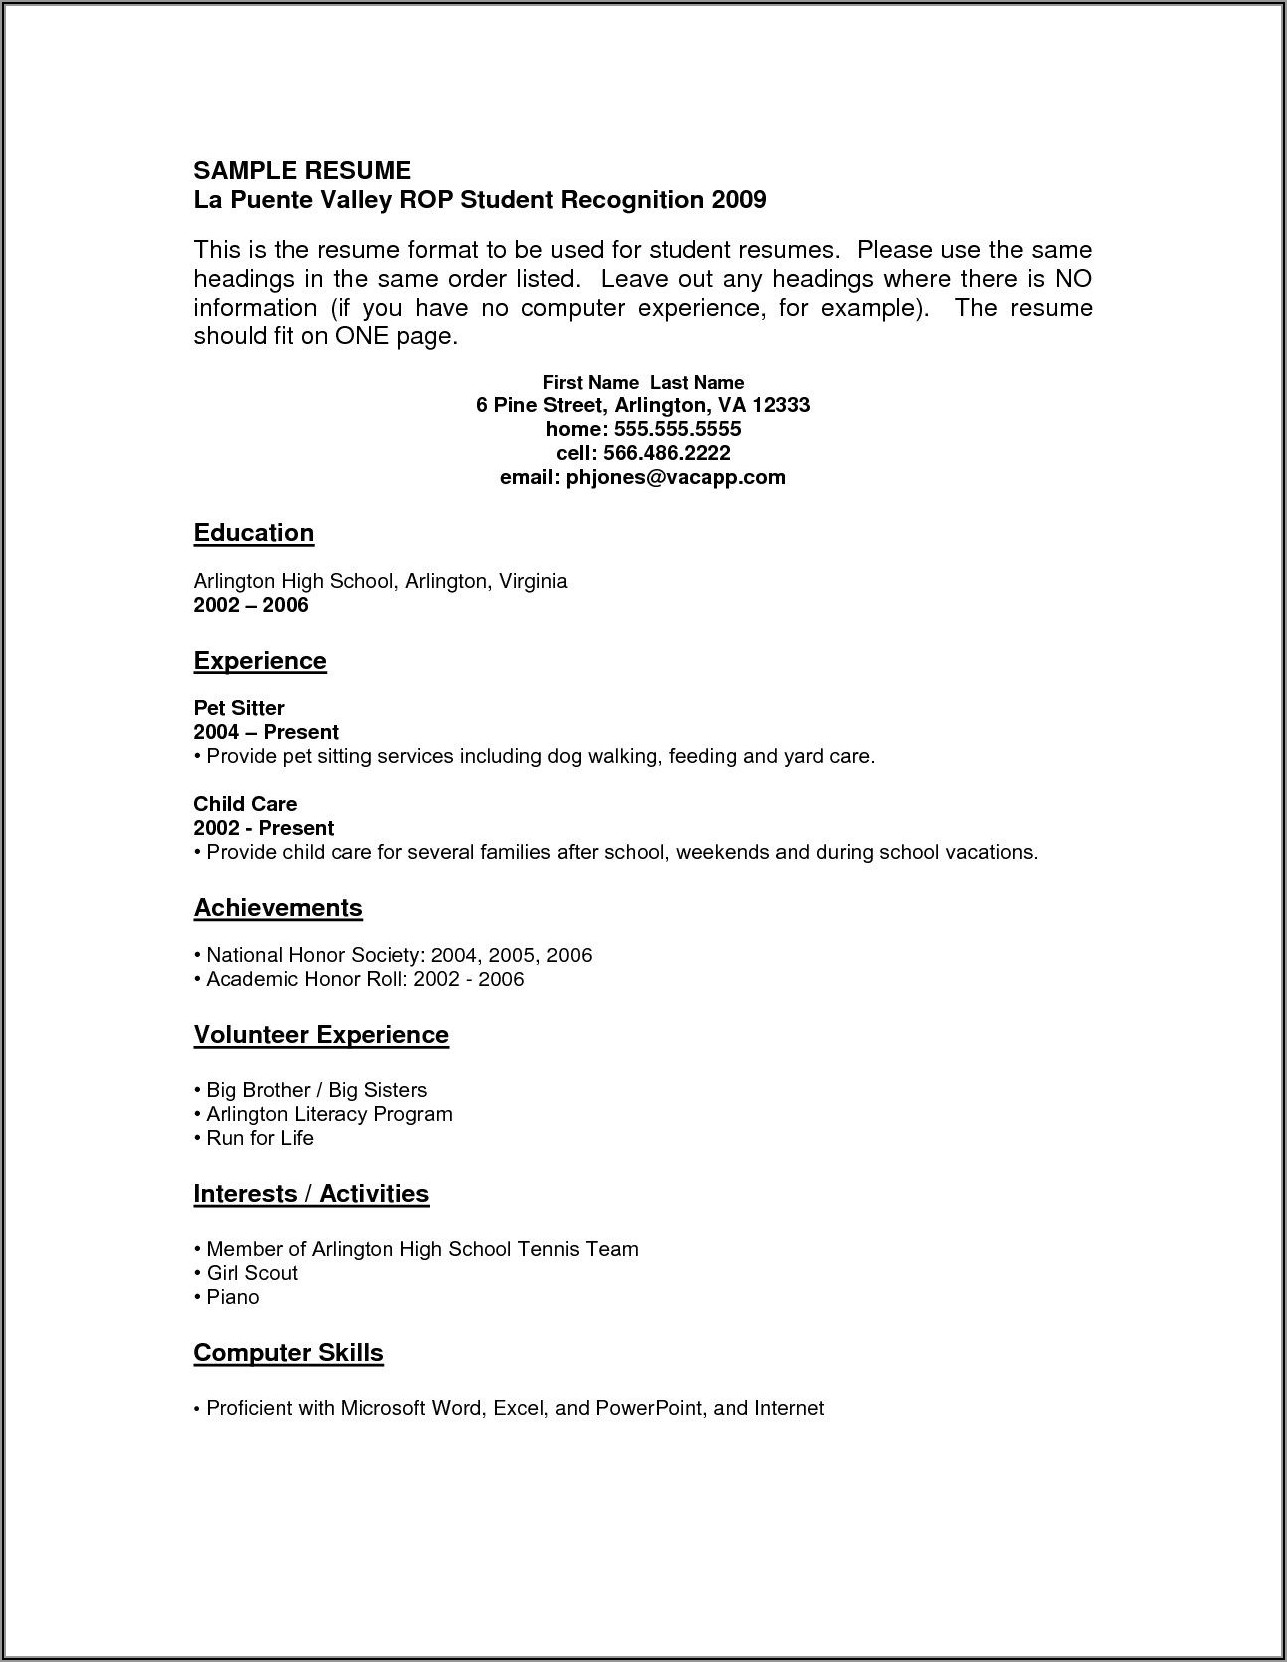 Free Resume Templates For High School Students With No Work Experience